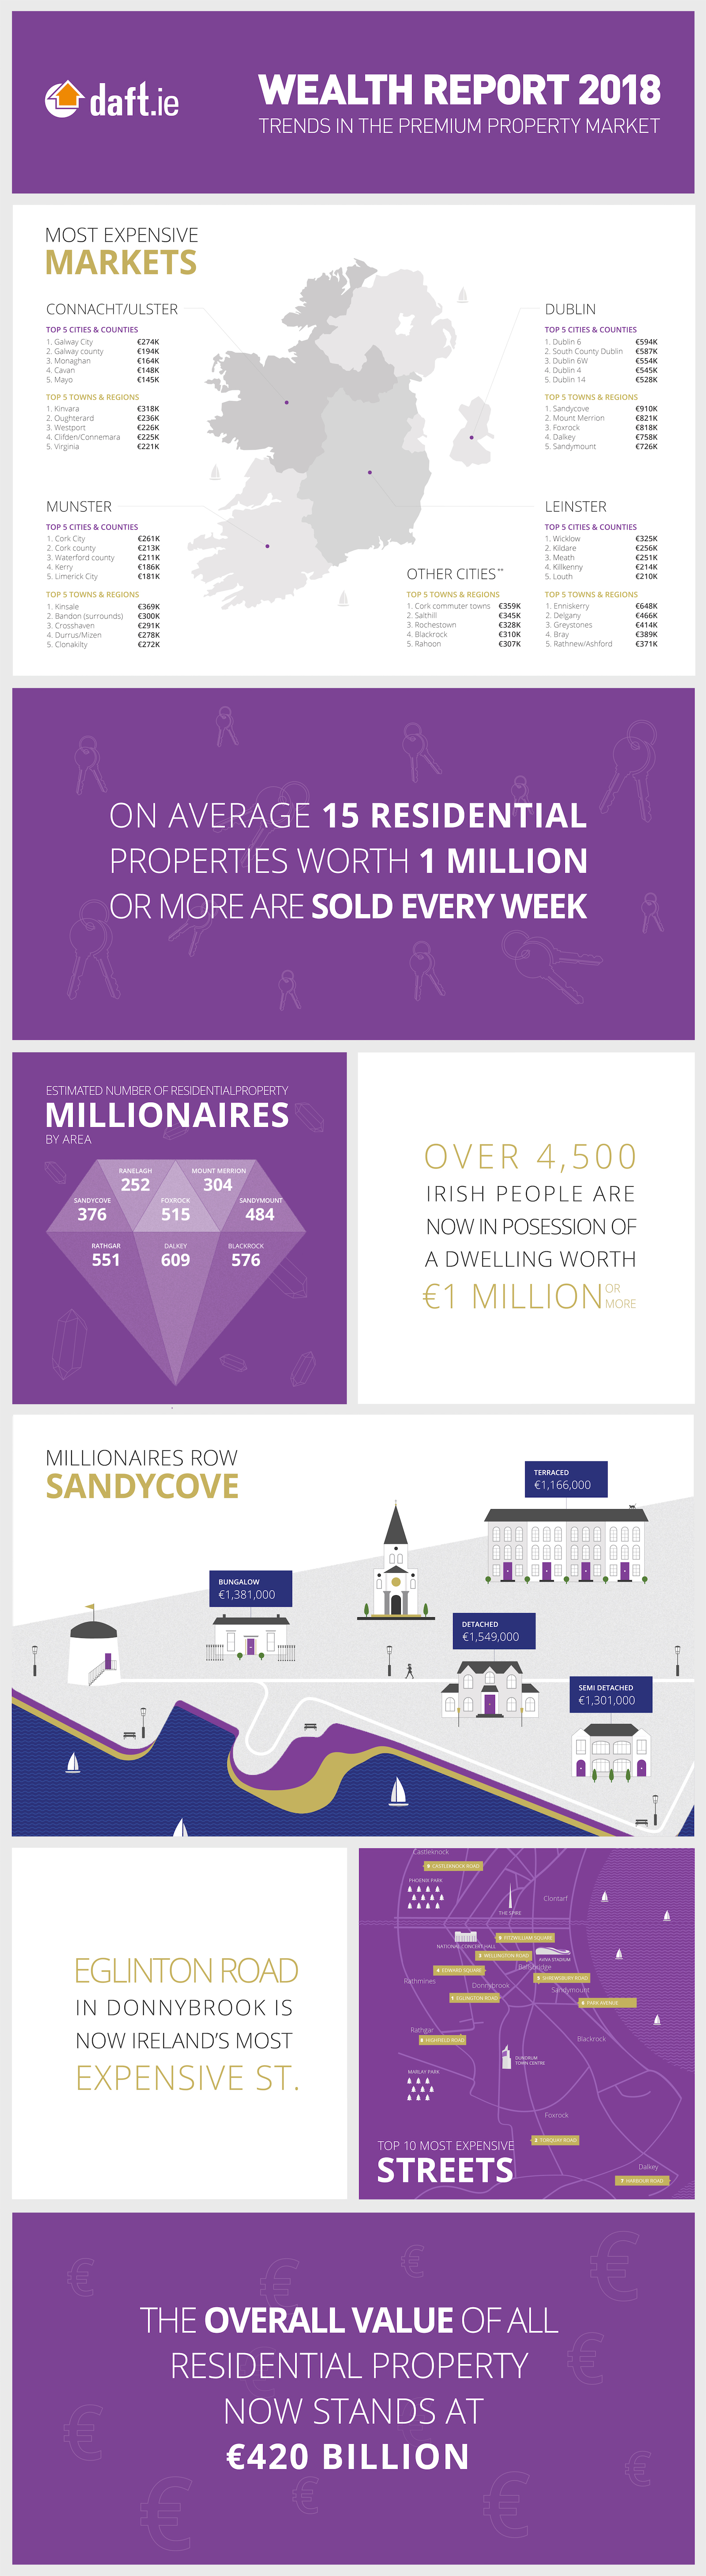 Daft.ie Wealth Report: 2018 Infographic